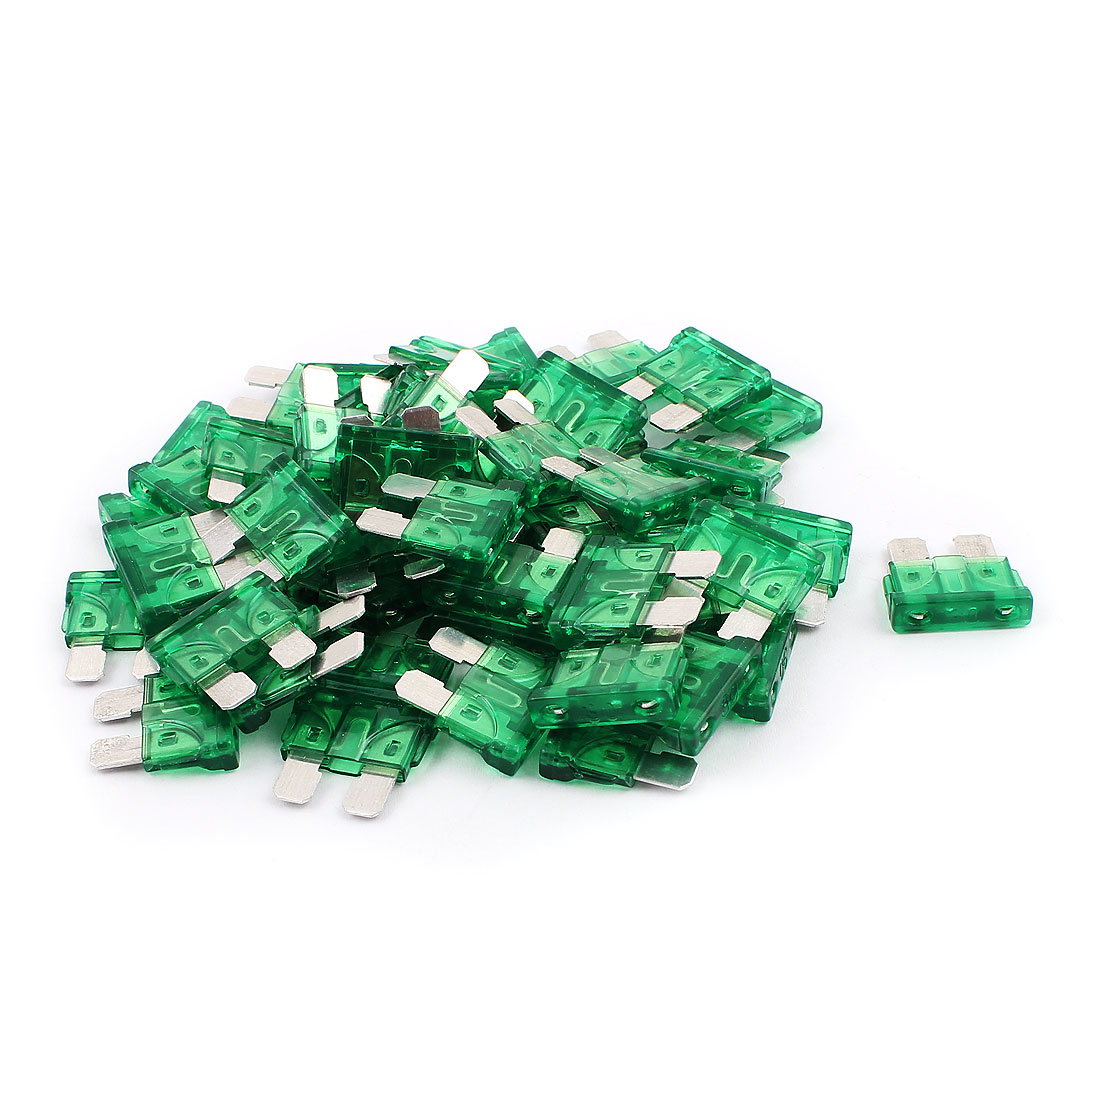 50pcs Mini Automotive Motorcycle Car Truck SUV Boat ATC Blade Fuses 30A Green